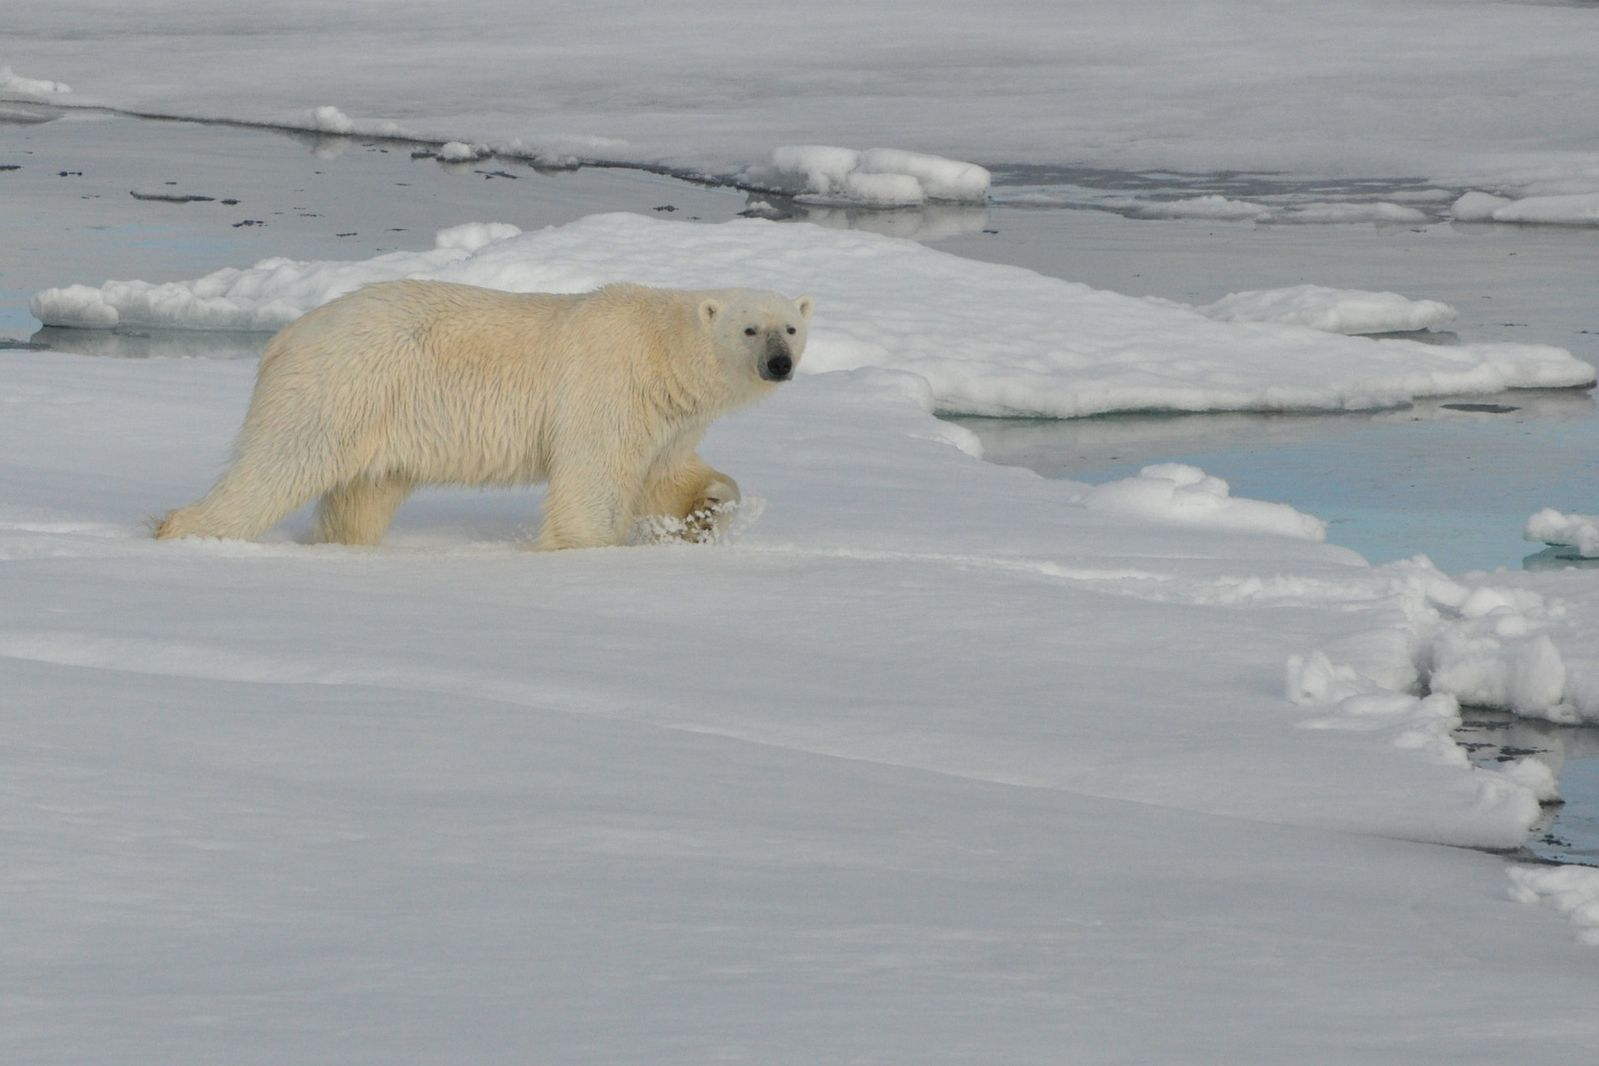 Did you know polar bears live to about an average of 25 years?